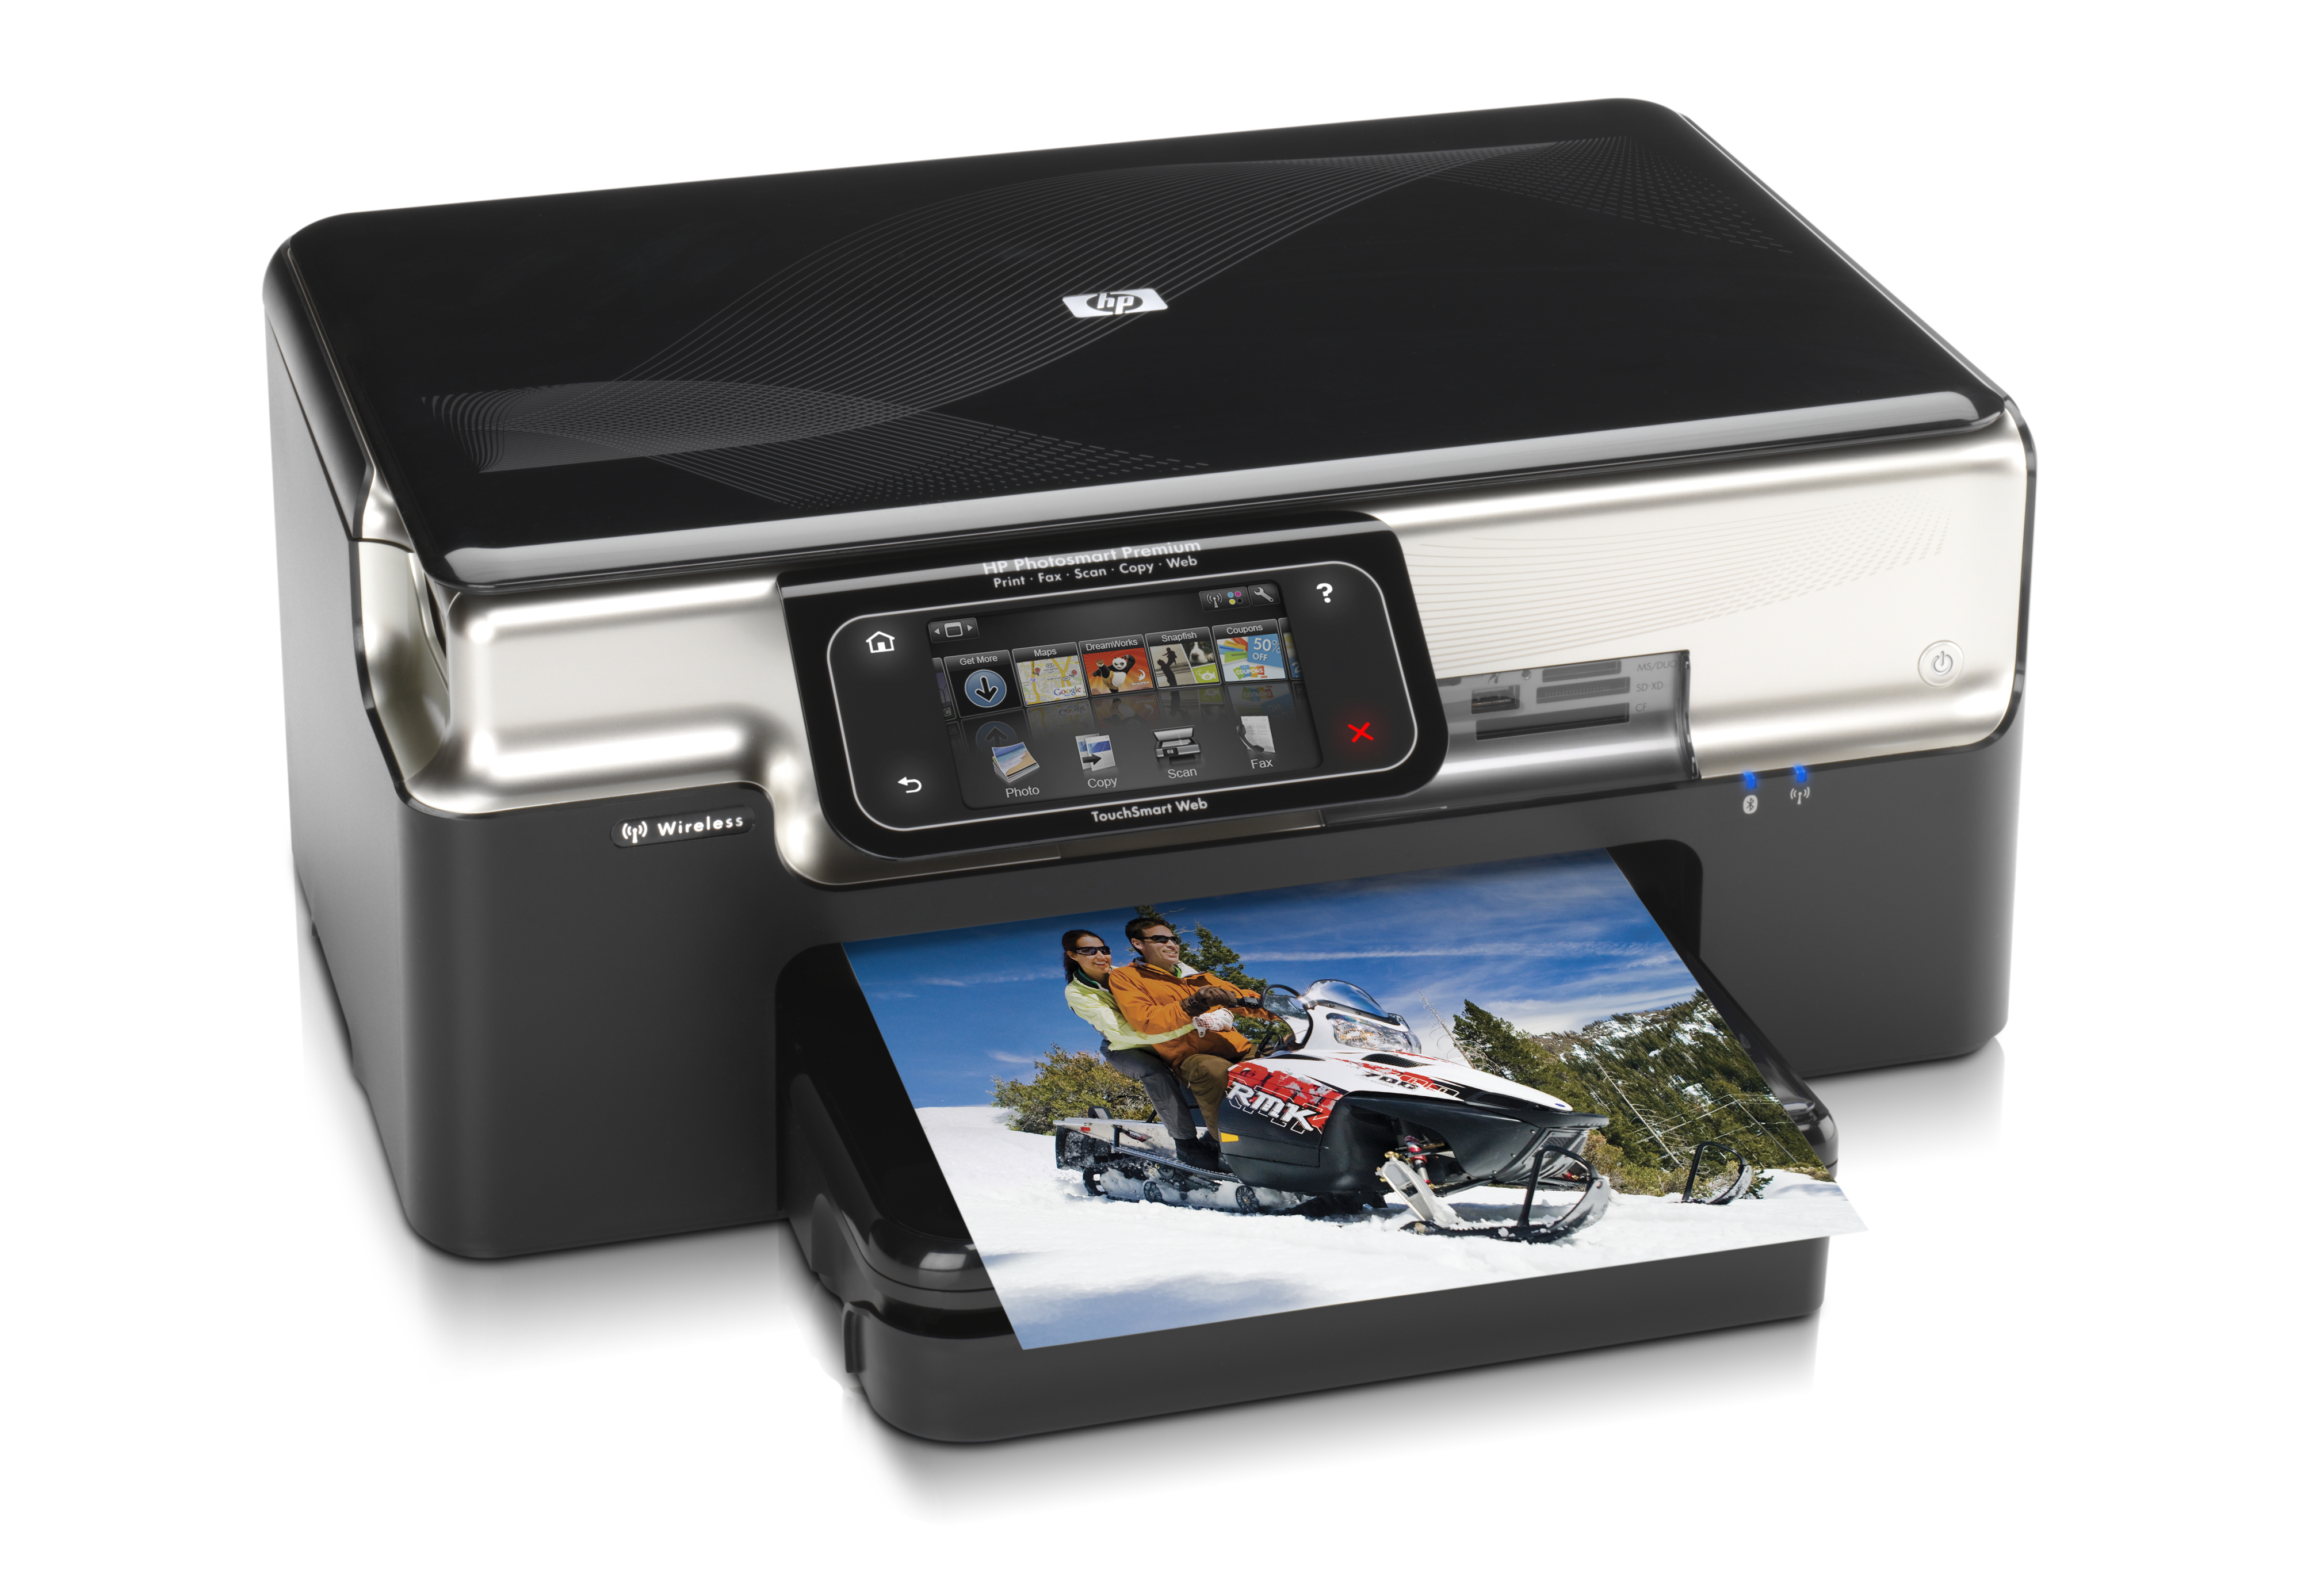 Father's Gift Ideas from HP and a $50 Snapfish Giftcard Giveaway!